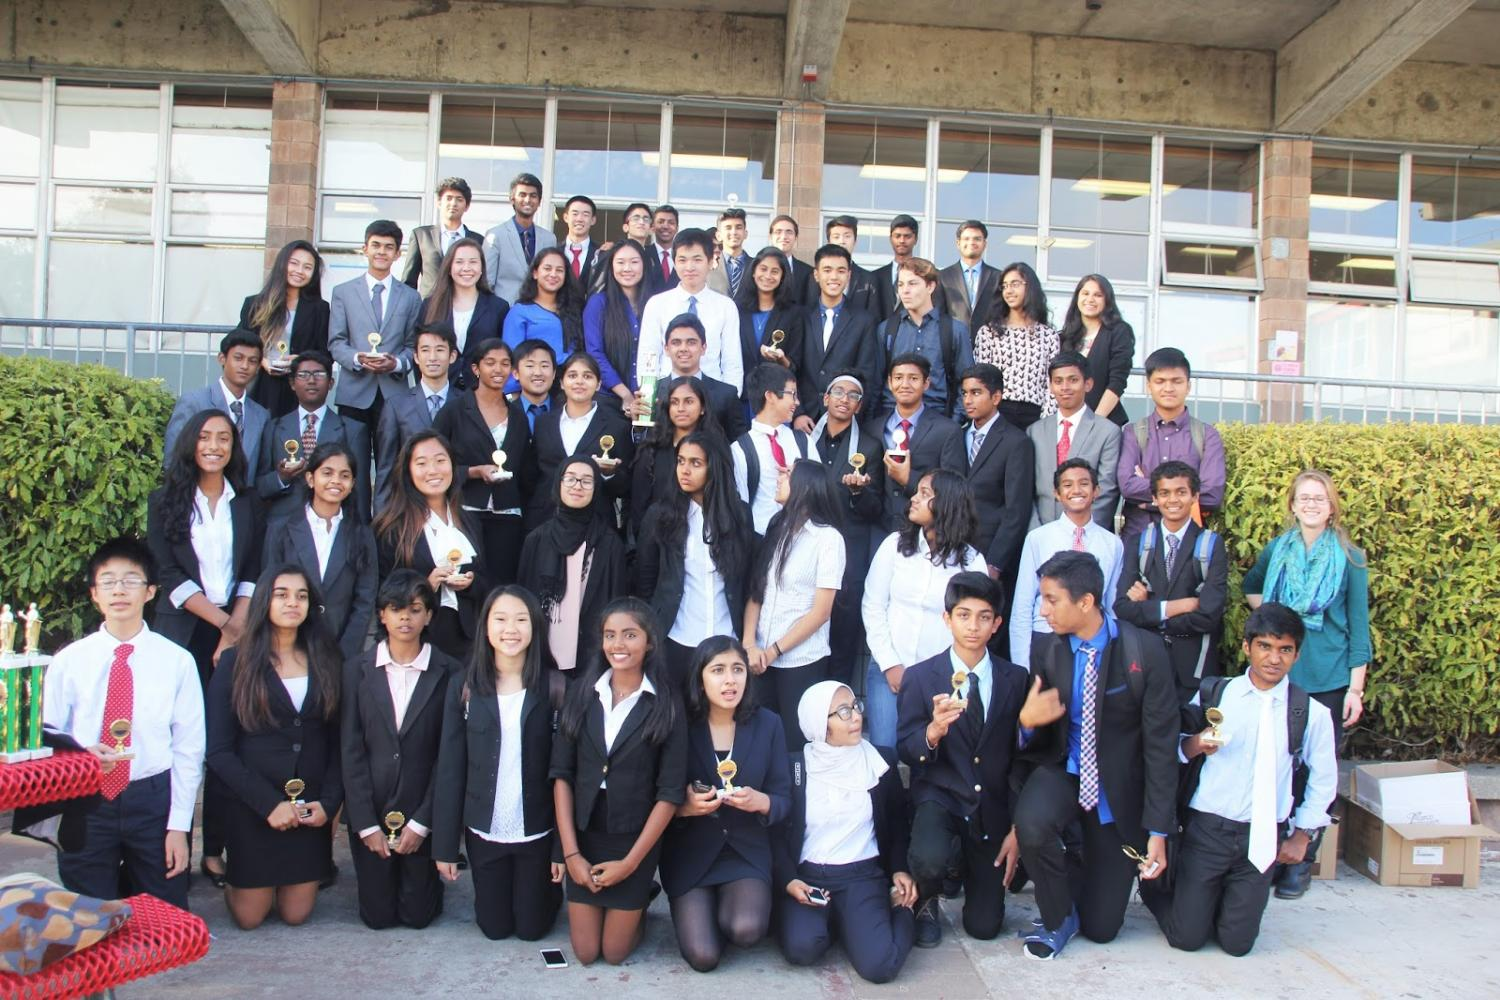 Irvington%E2%80%99s+debate+team+rejoices+after+a+successful+tournament+with+one+of+the+largest+attendances+till+date